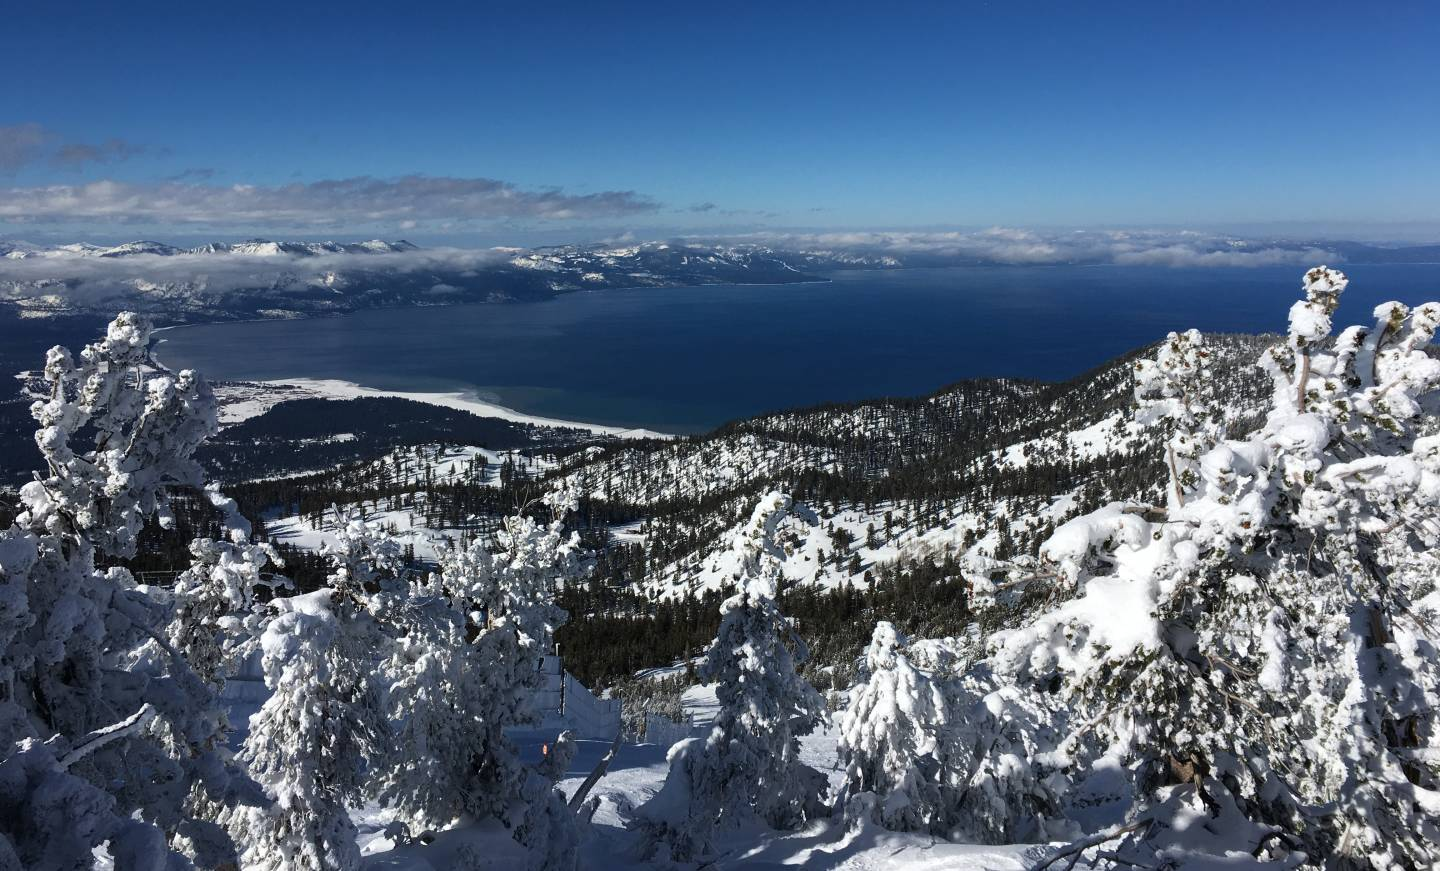 Cold December storms built hopes for a robust snowpack in the Sierra Nevada this winter.